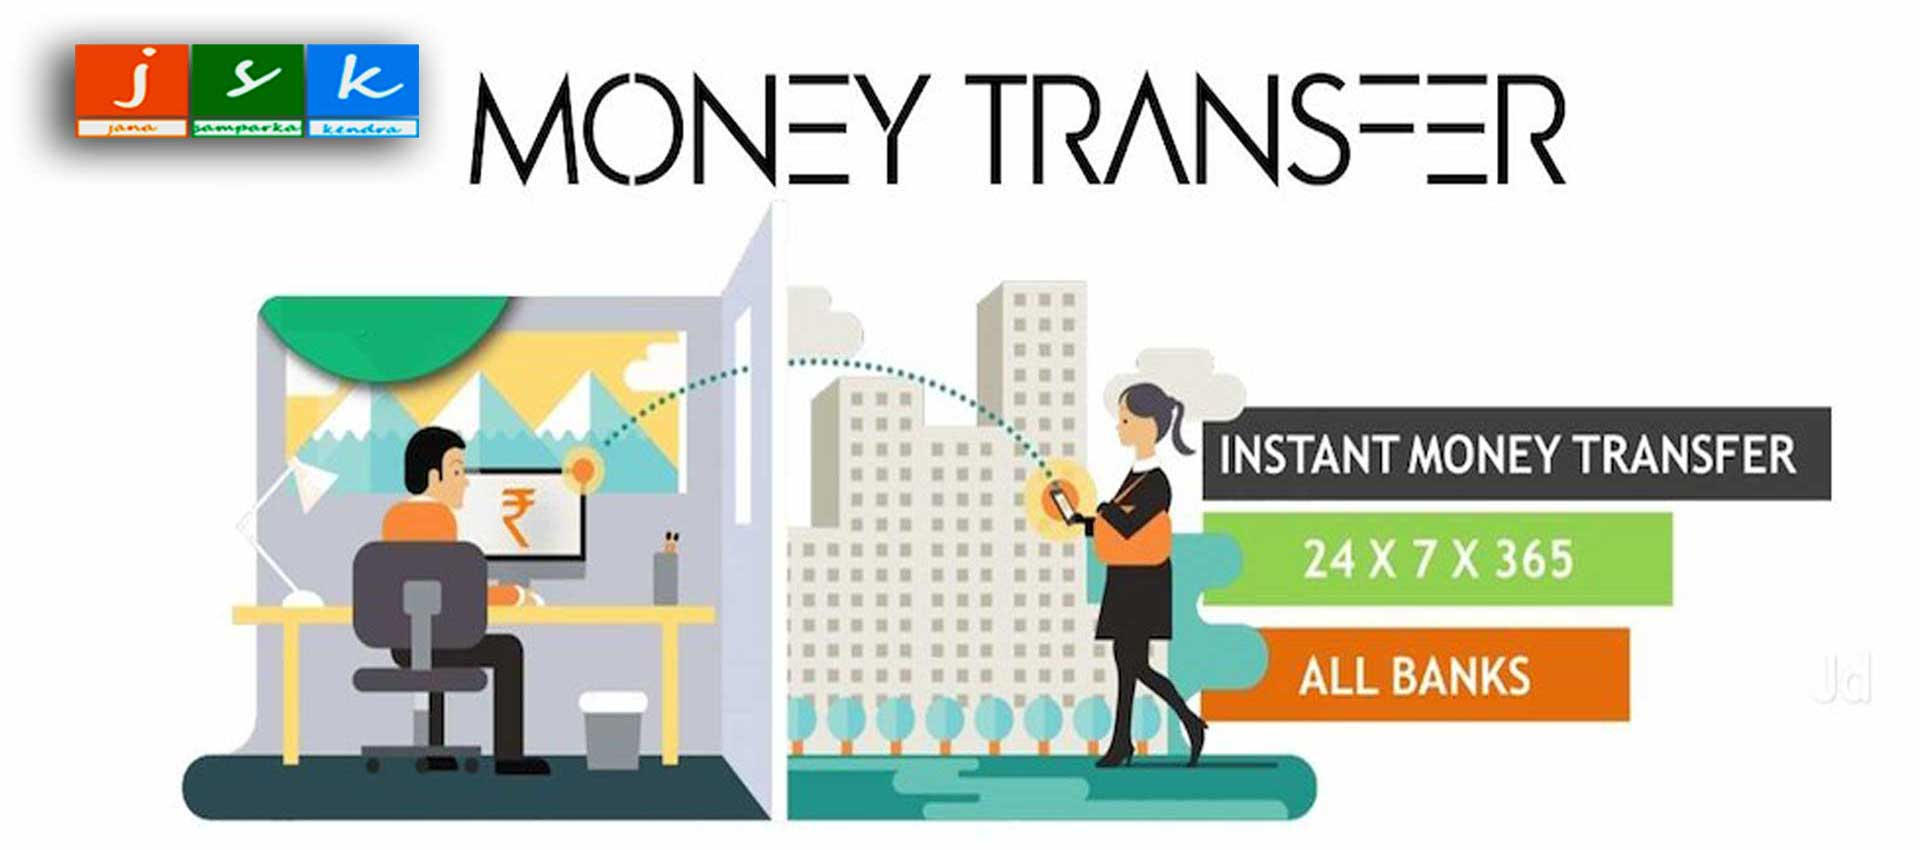 JSK MONEY TRANSFER